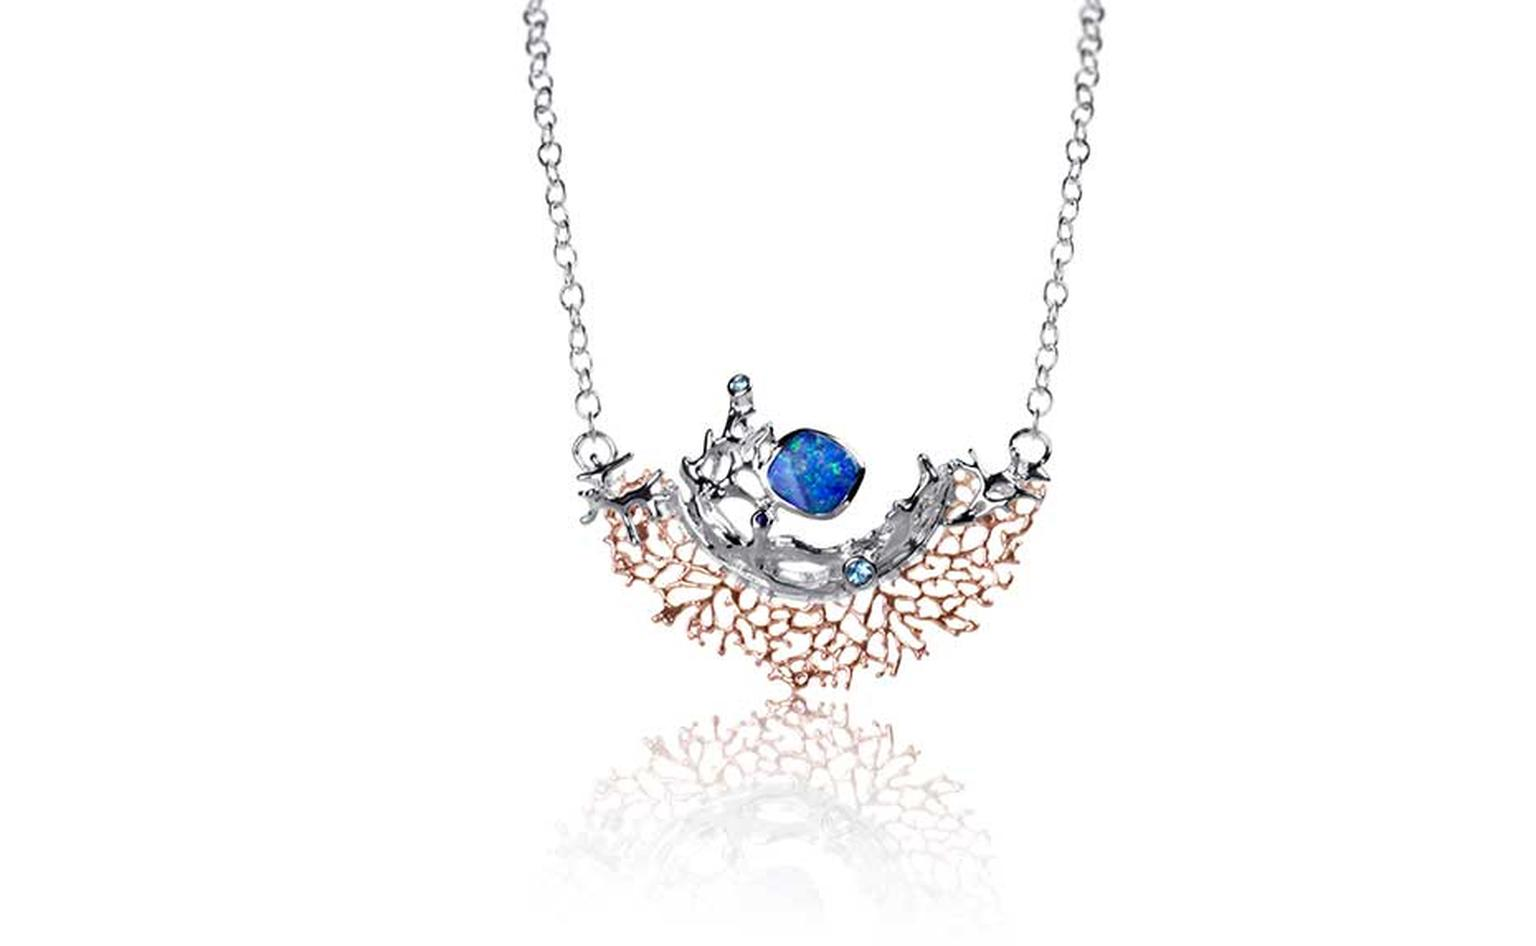 Keiko Uno Coral Garden necklace with opals, blue sapphires and blue topaz.